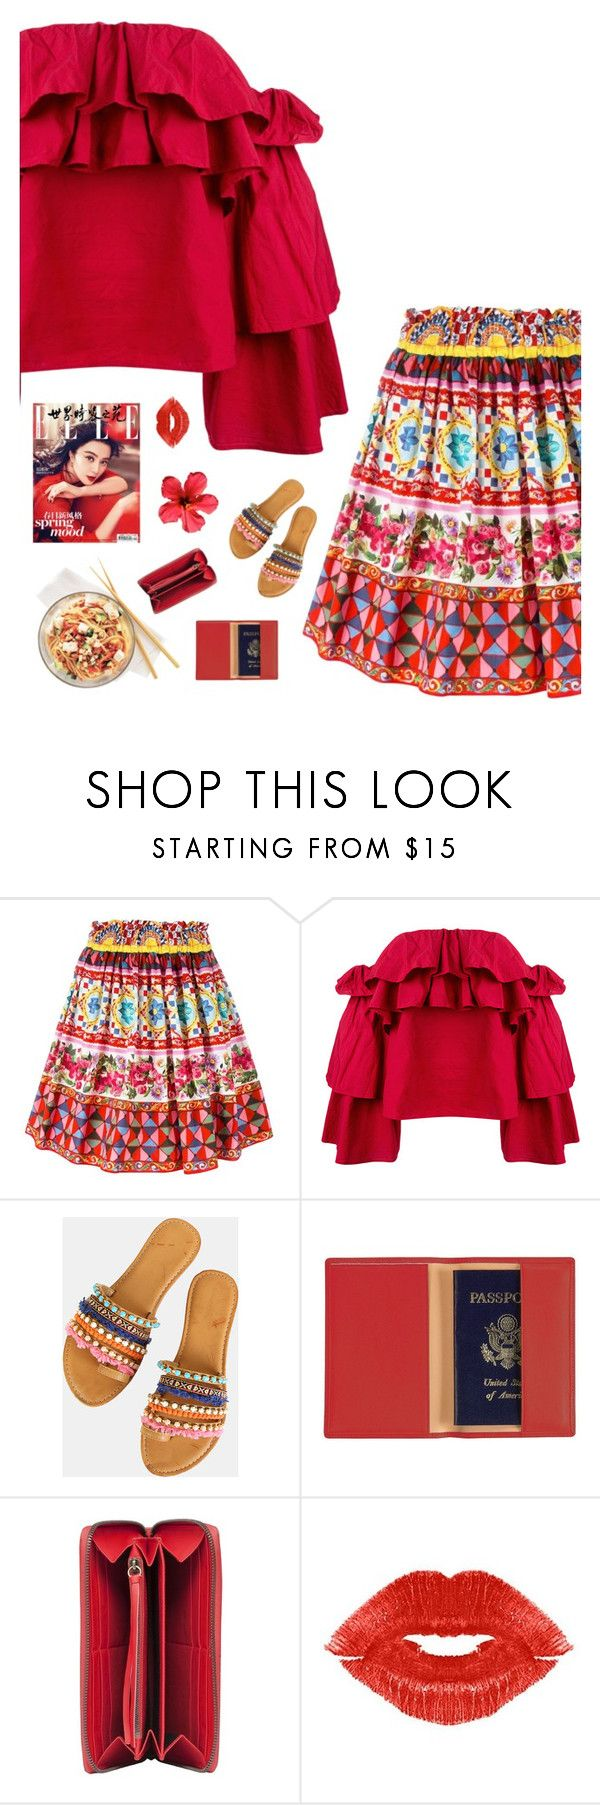 """""""Red"""" by genesis129 on Polyvore featuring Dolce&Gabbana, Erika Cavallini Semi-Couture, Royce Leather, Balenciaga, Manic Panic NYC and vintage"""